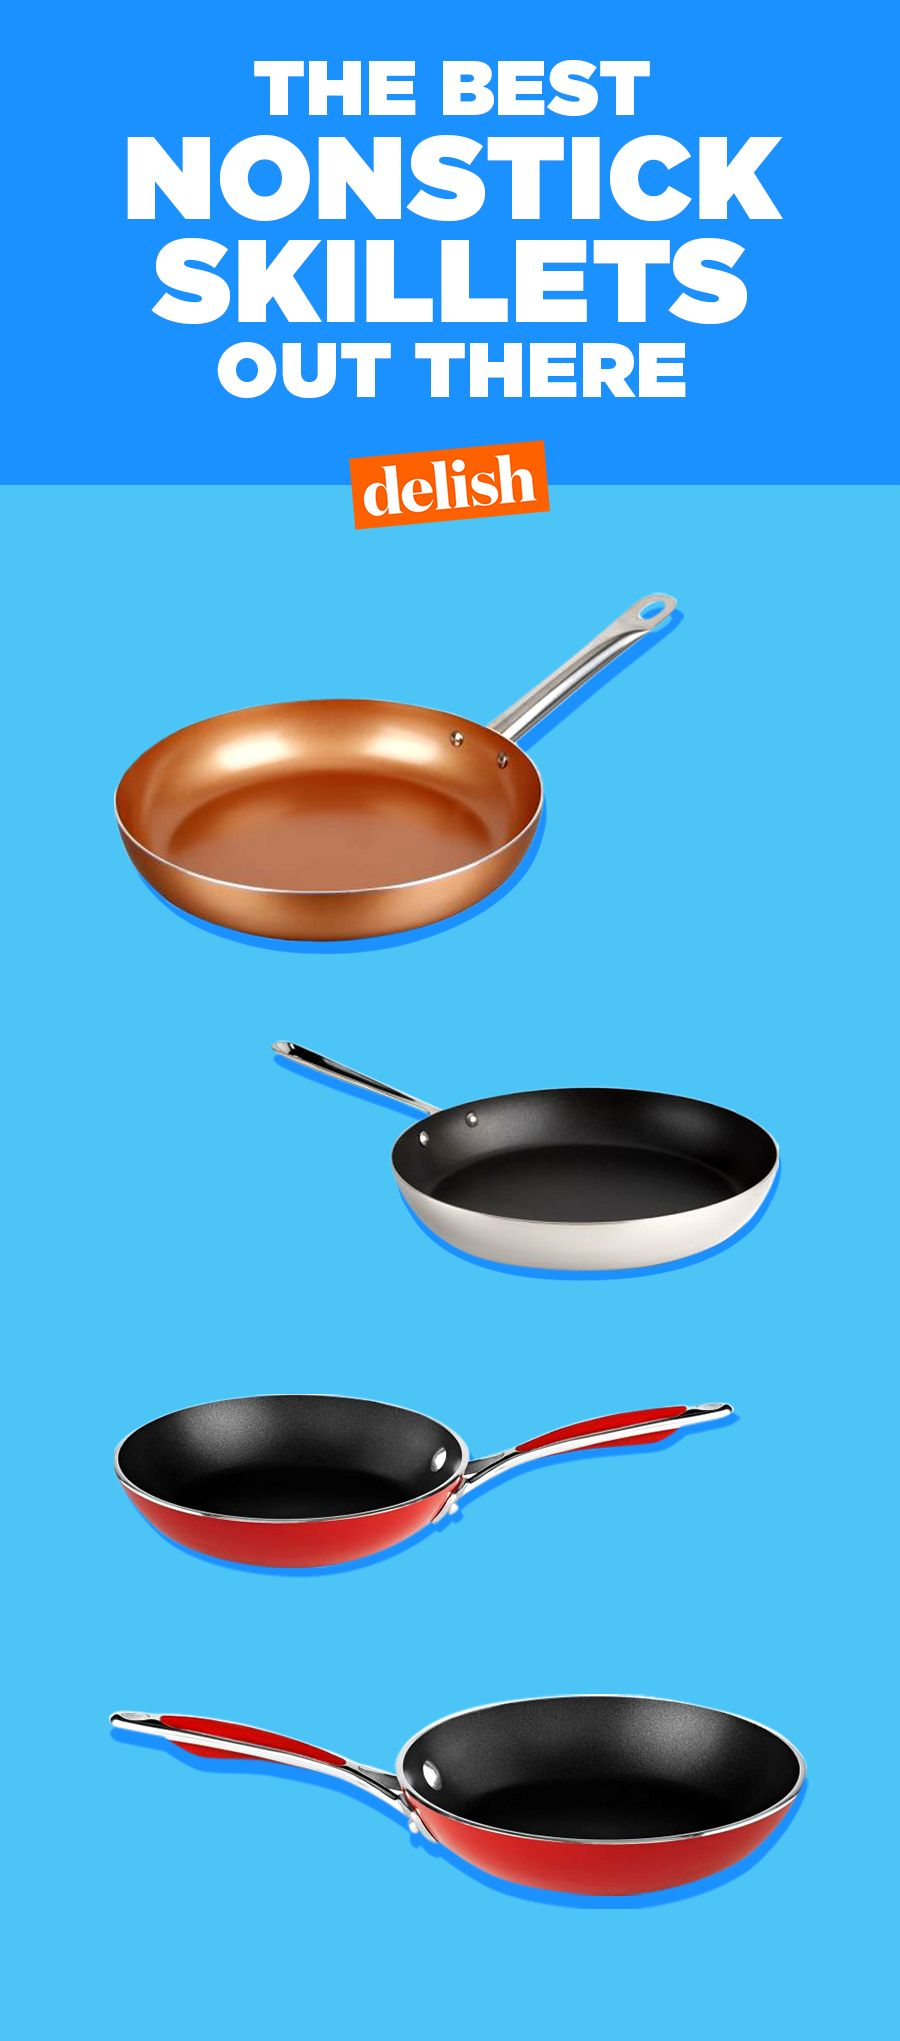 10 Best Nonstick Skillets 2017 - Top Rated Non Stick Skillets To Buy ...